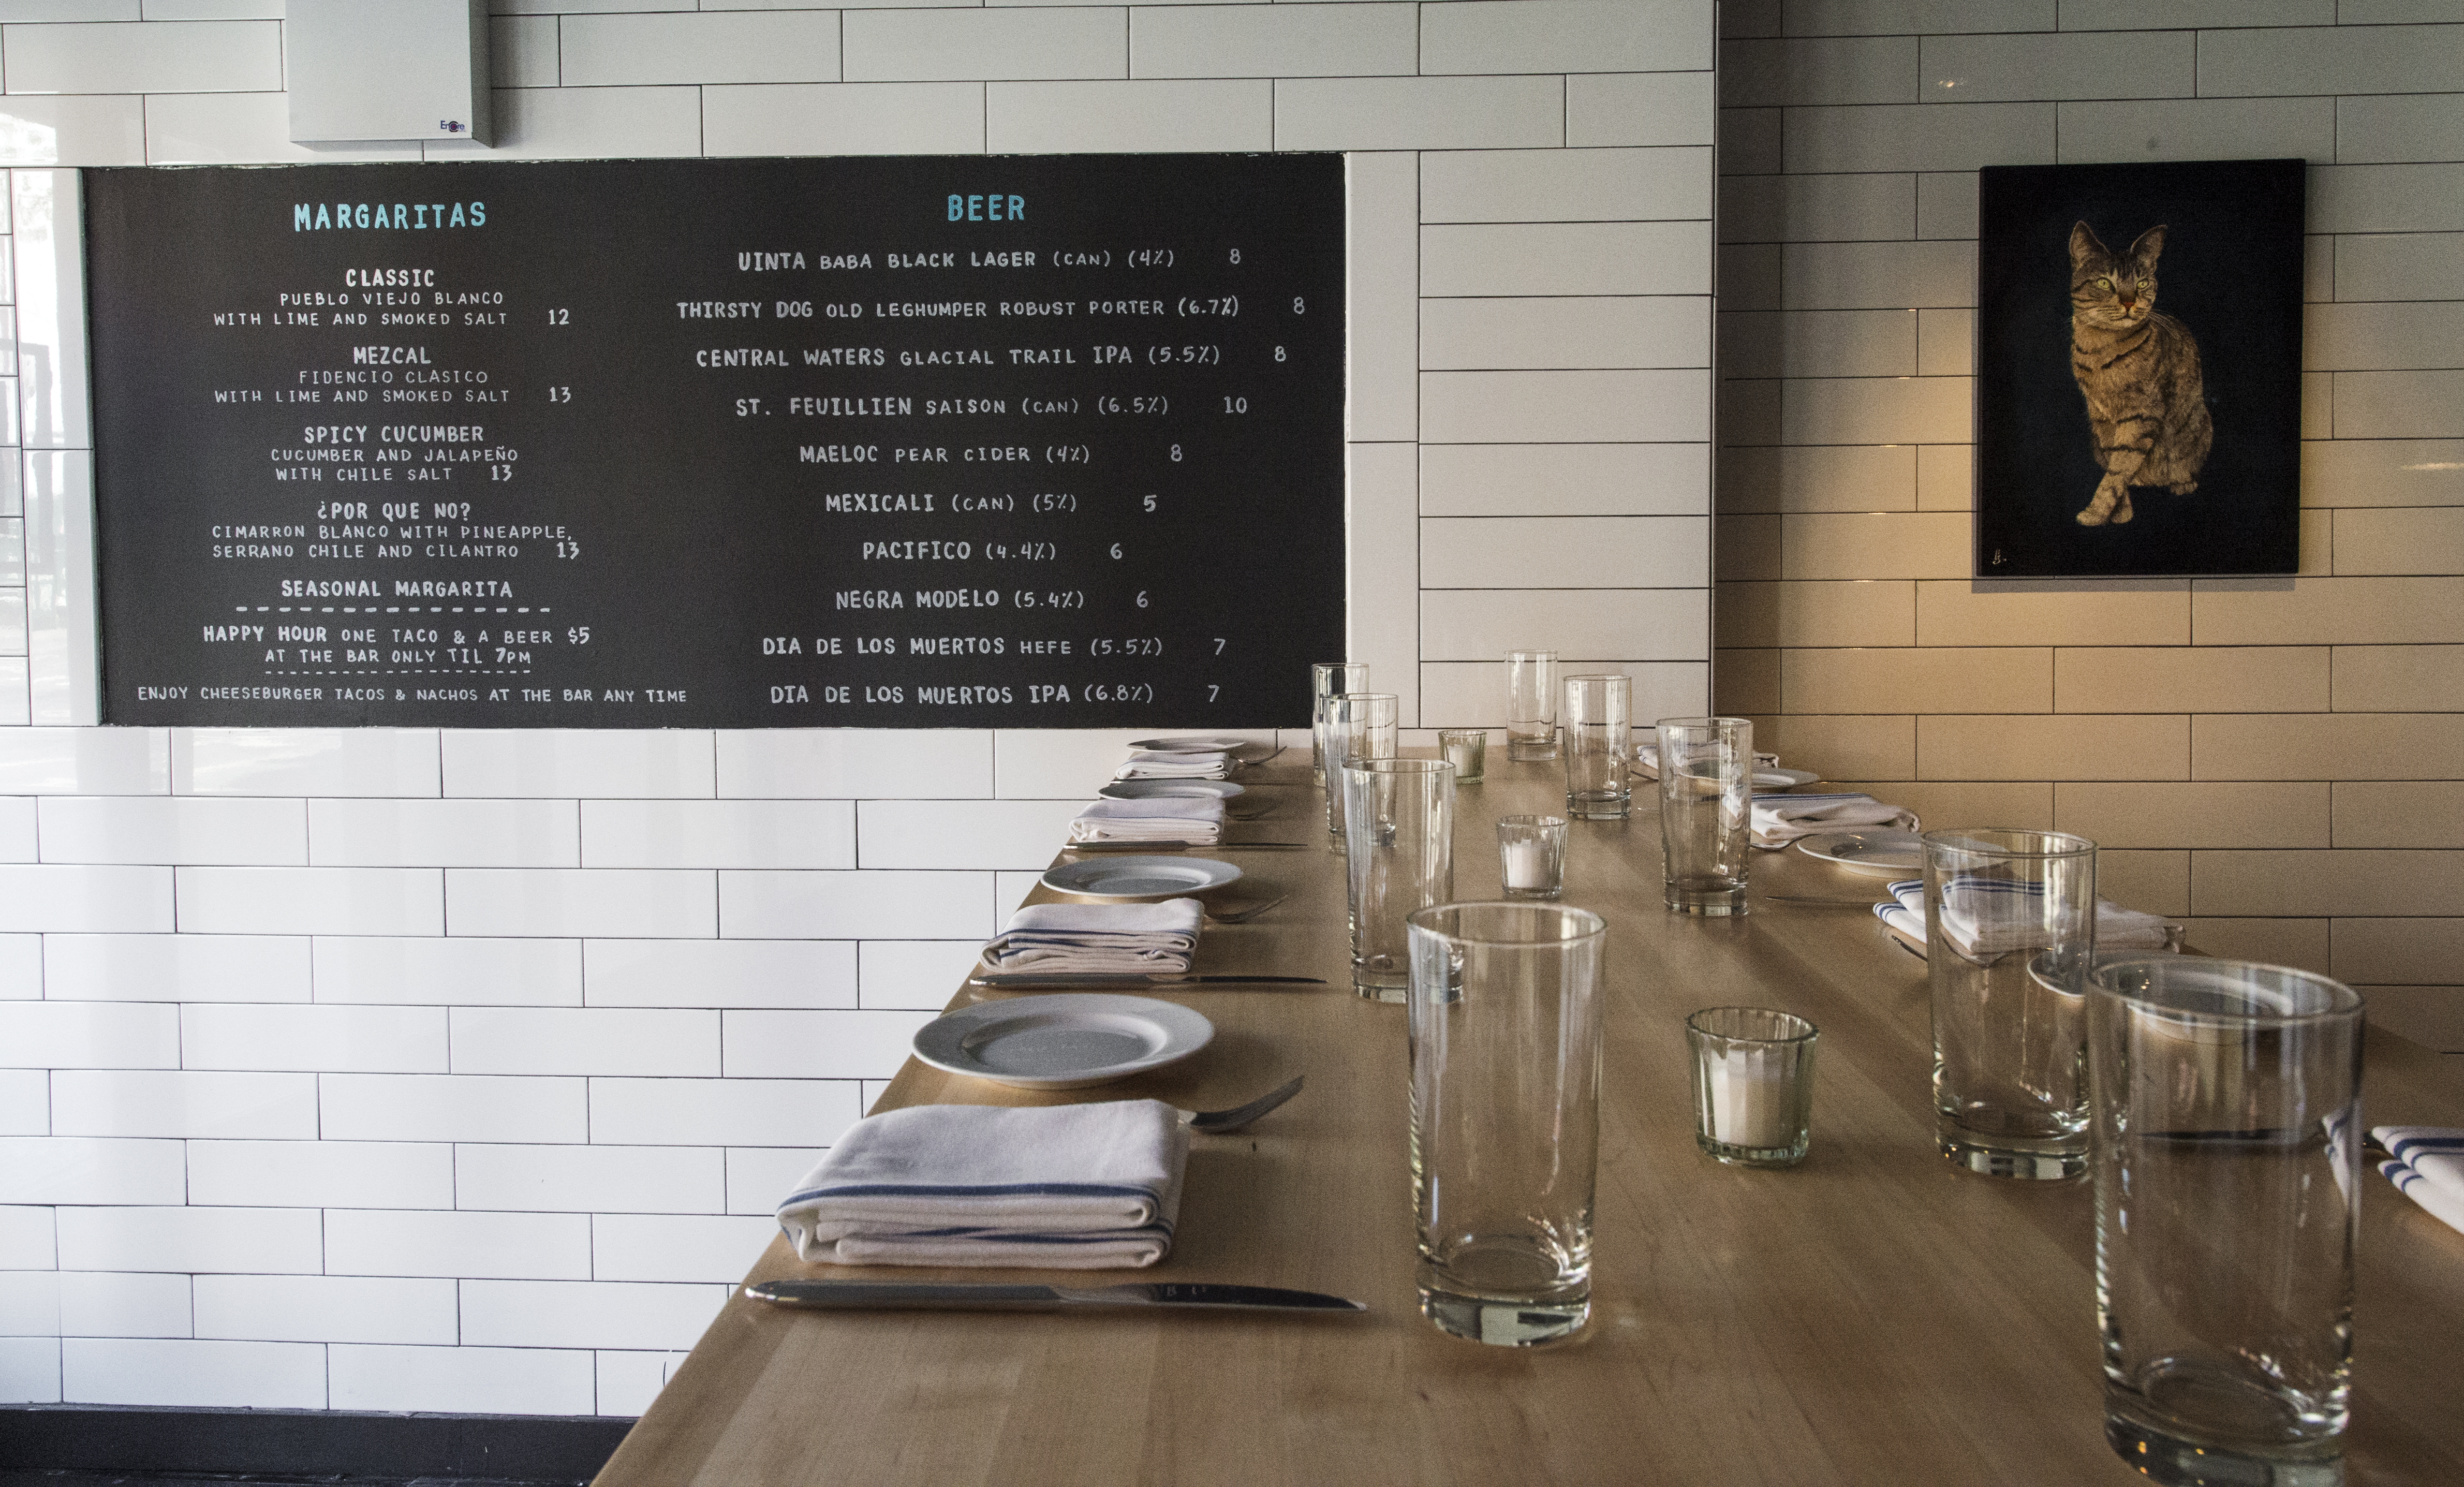 [The dining room at Empellon Cocina by Krieger]